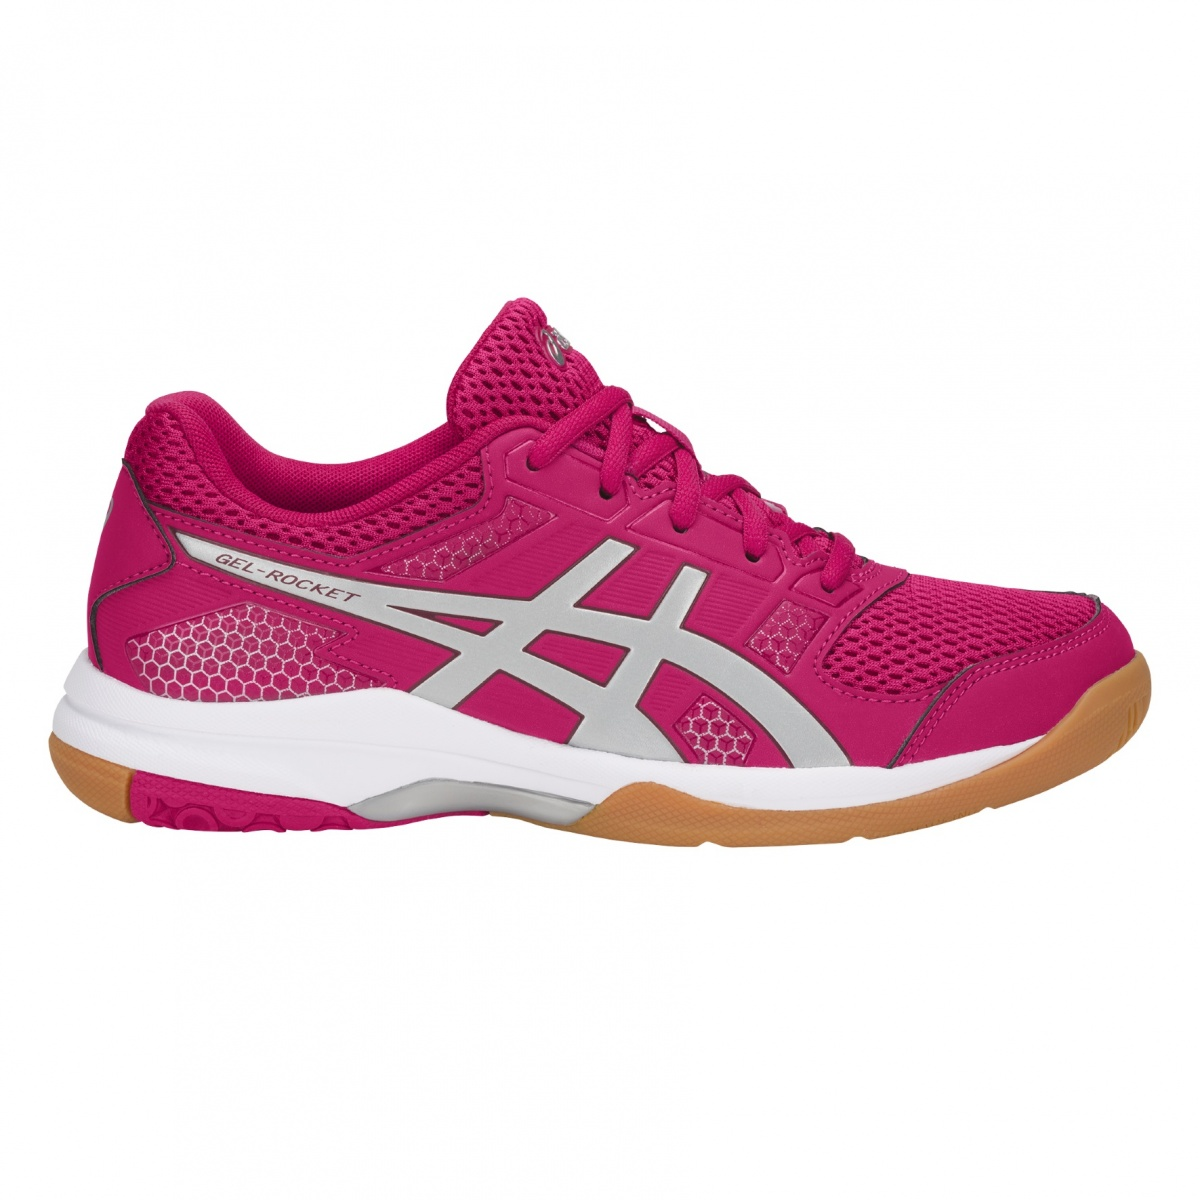 Asics Gel Rocket 8 2018 rose Indoorschuhe Damen